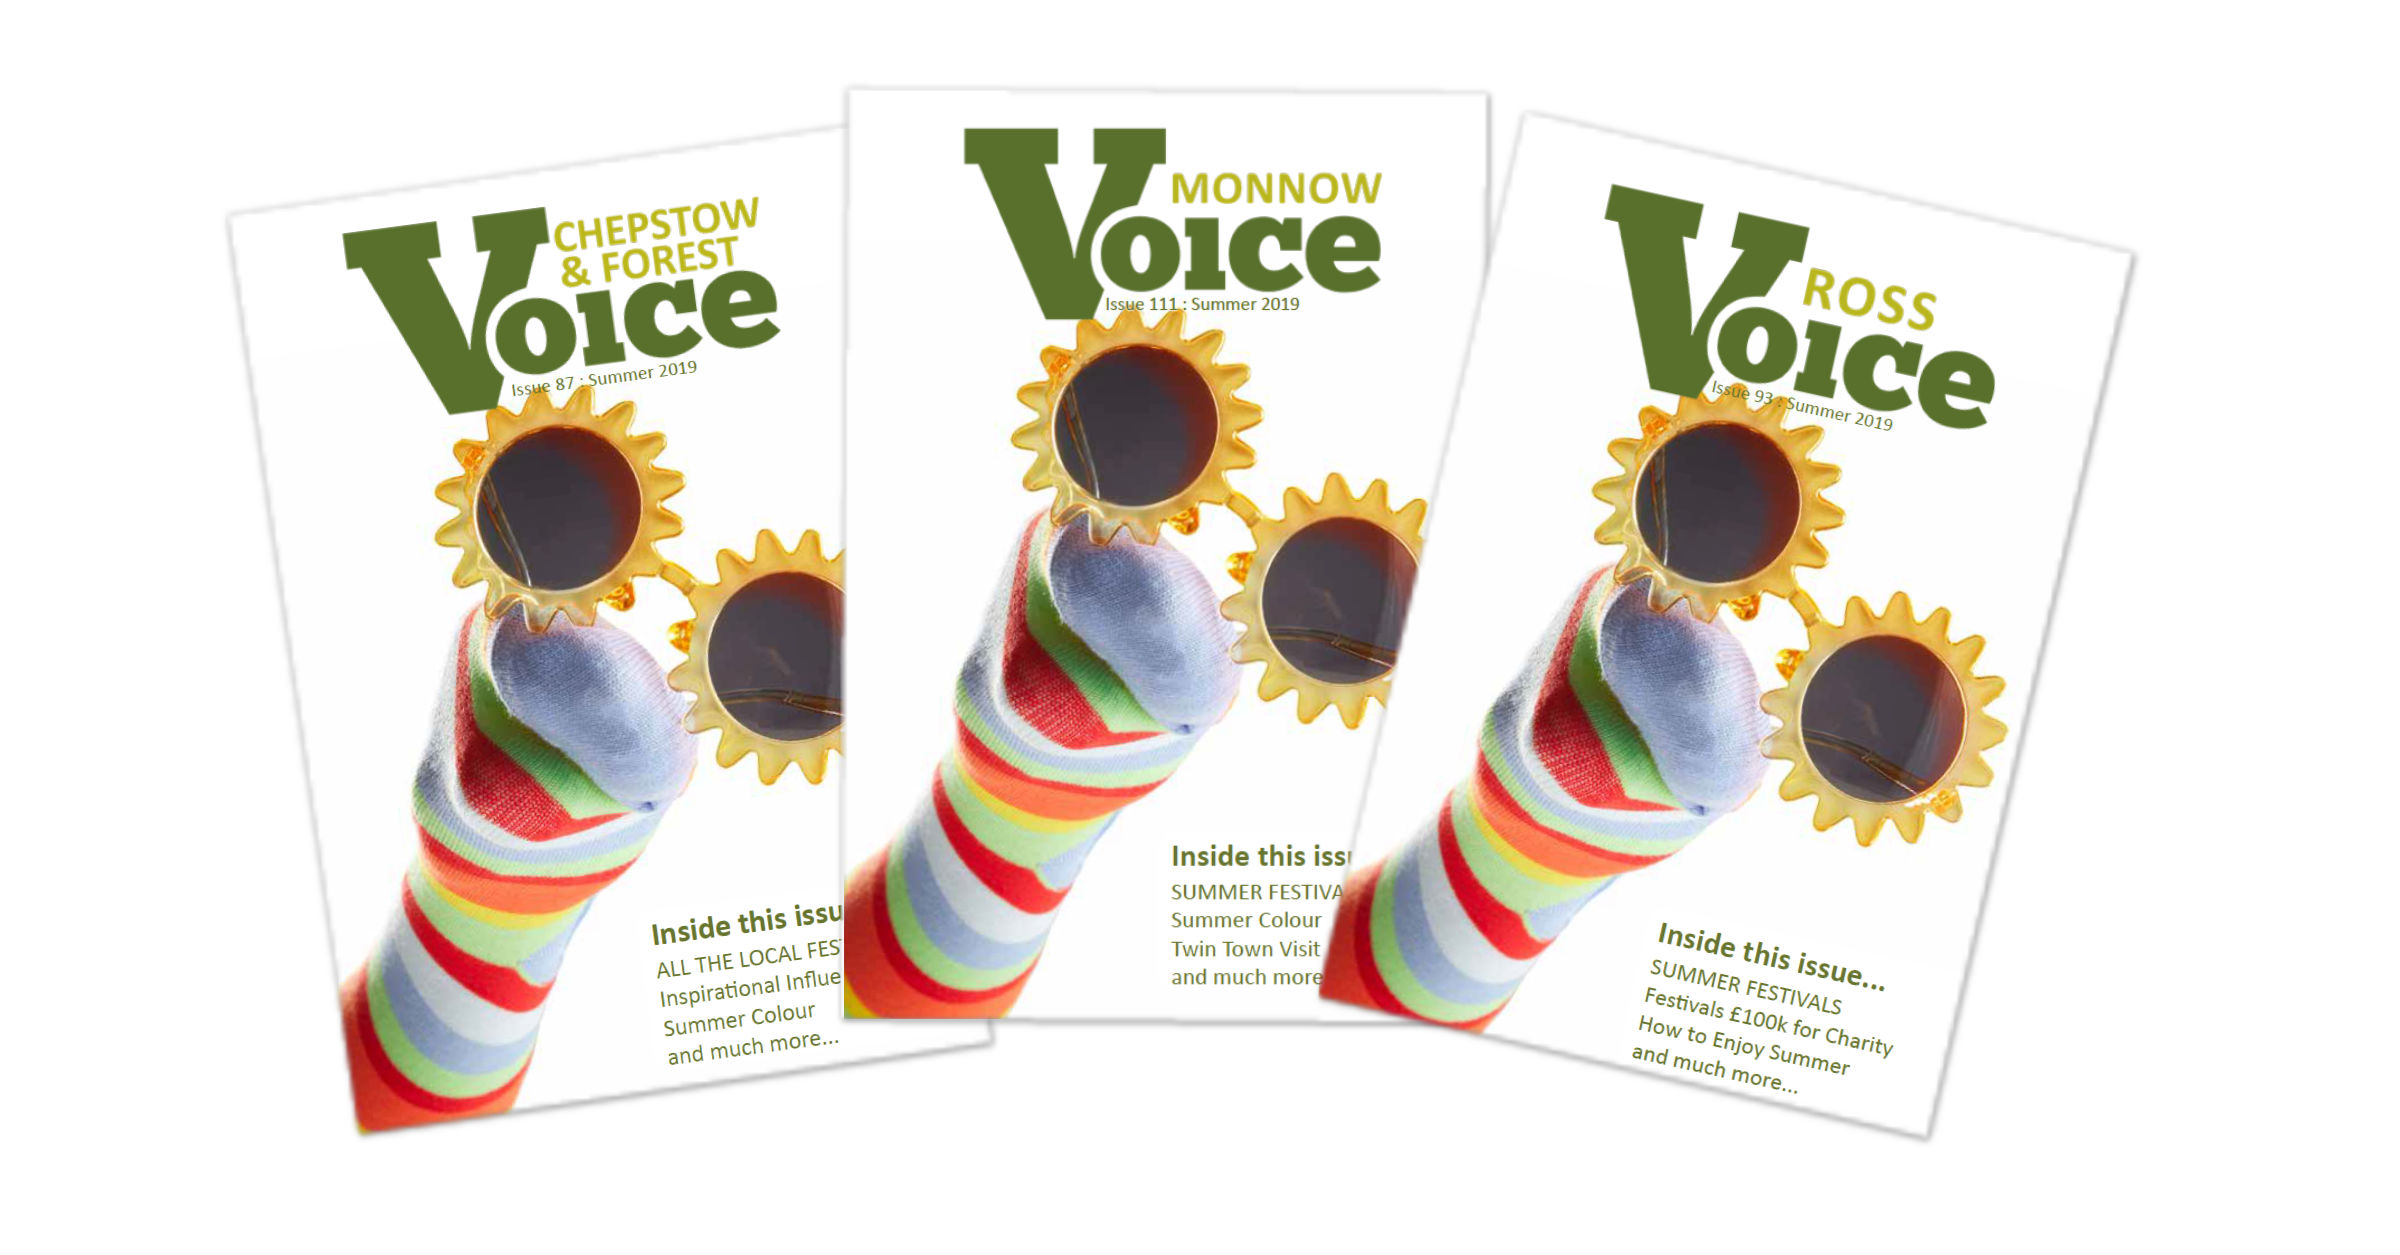 Covers for Monnow Voice, Chepstow and Forest Voice and Ross Voice magazines, Summer 2019